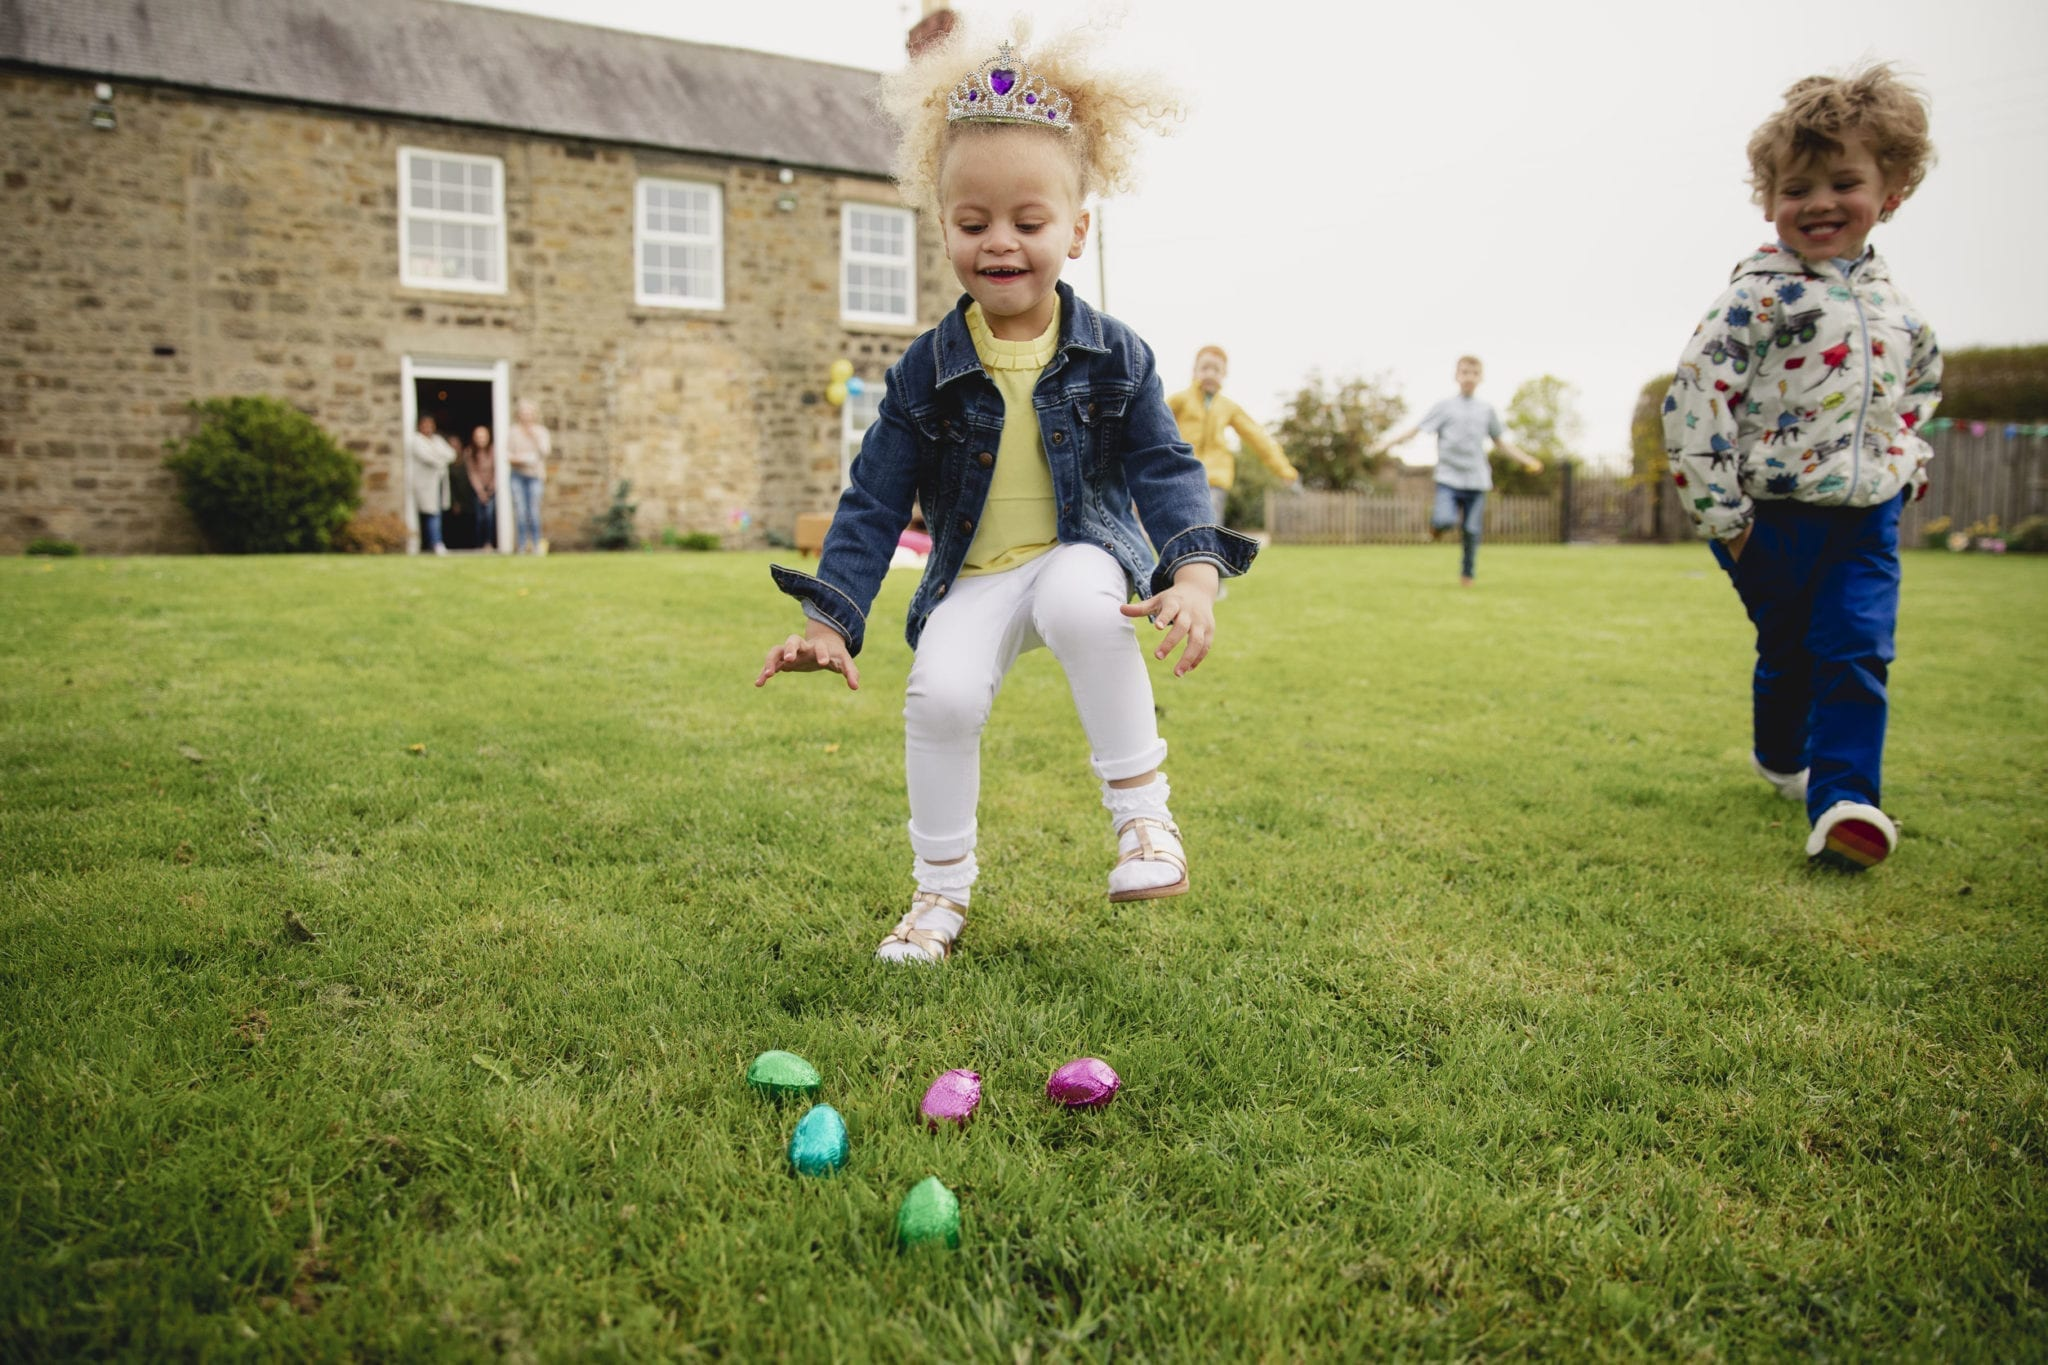 Easter Injuries: Common Ways Florida Kids Get Hurt